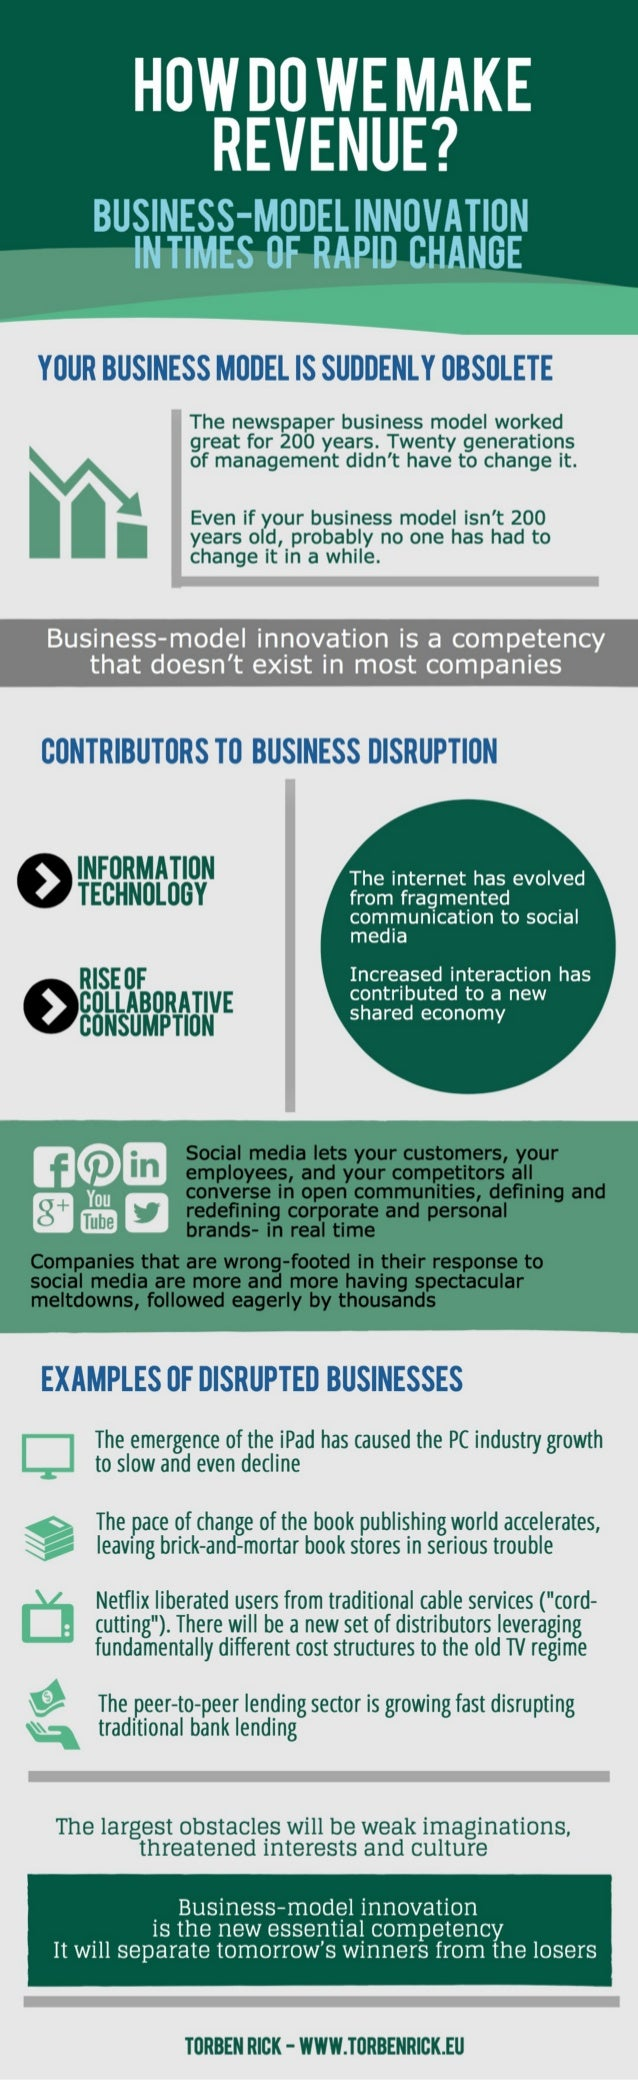 Infographic: Business model innovation in times of rapid change